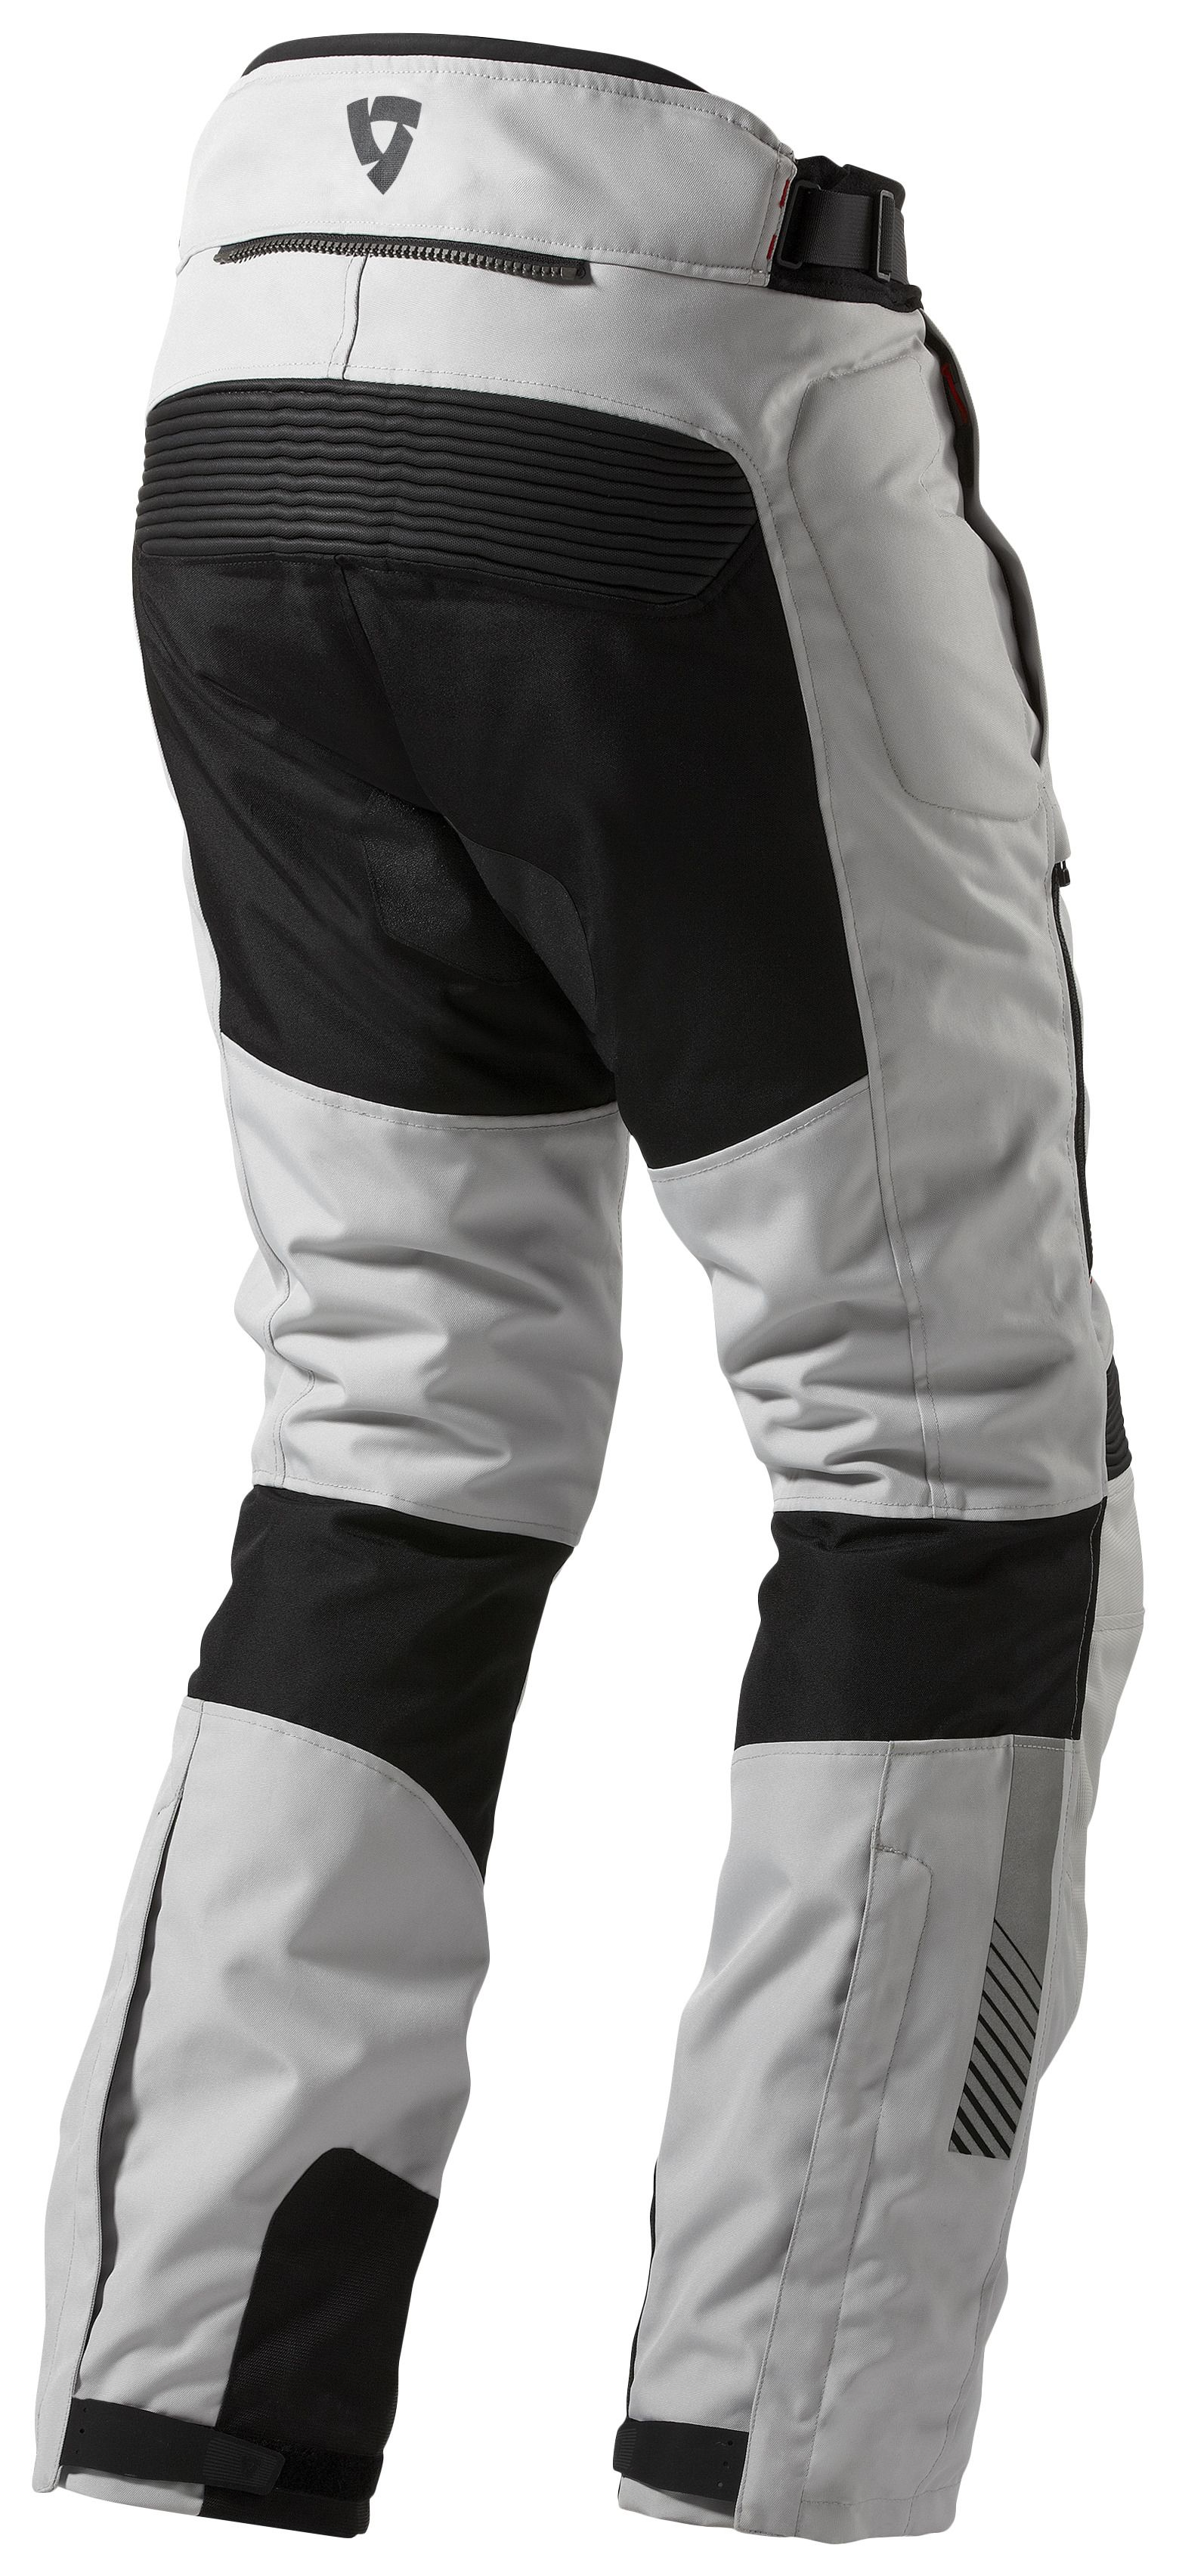 https://www.cyclegear.com/_a/product_images/0066/9999/revit_neptune_gtx_pants.jpg